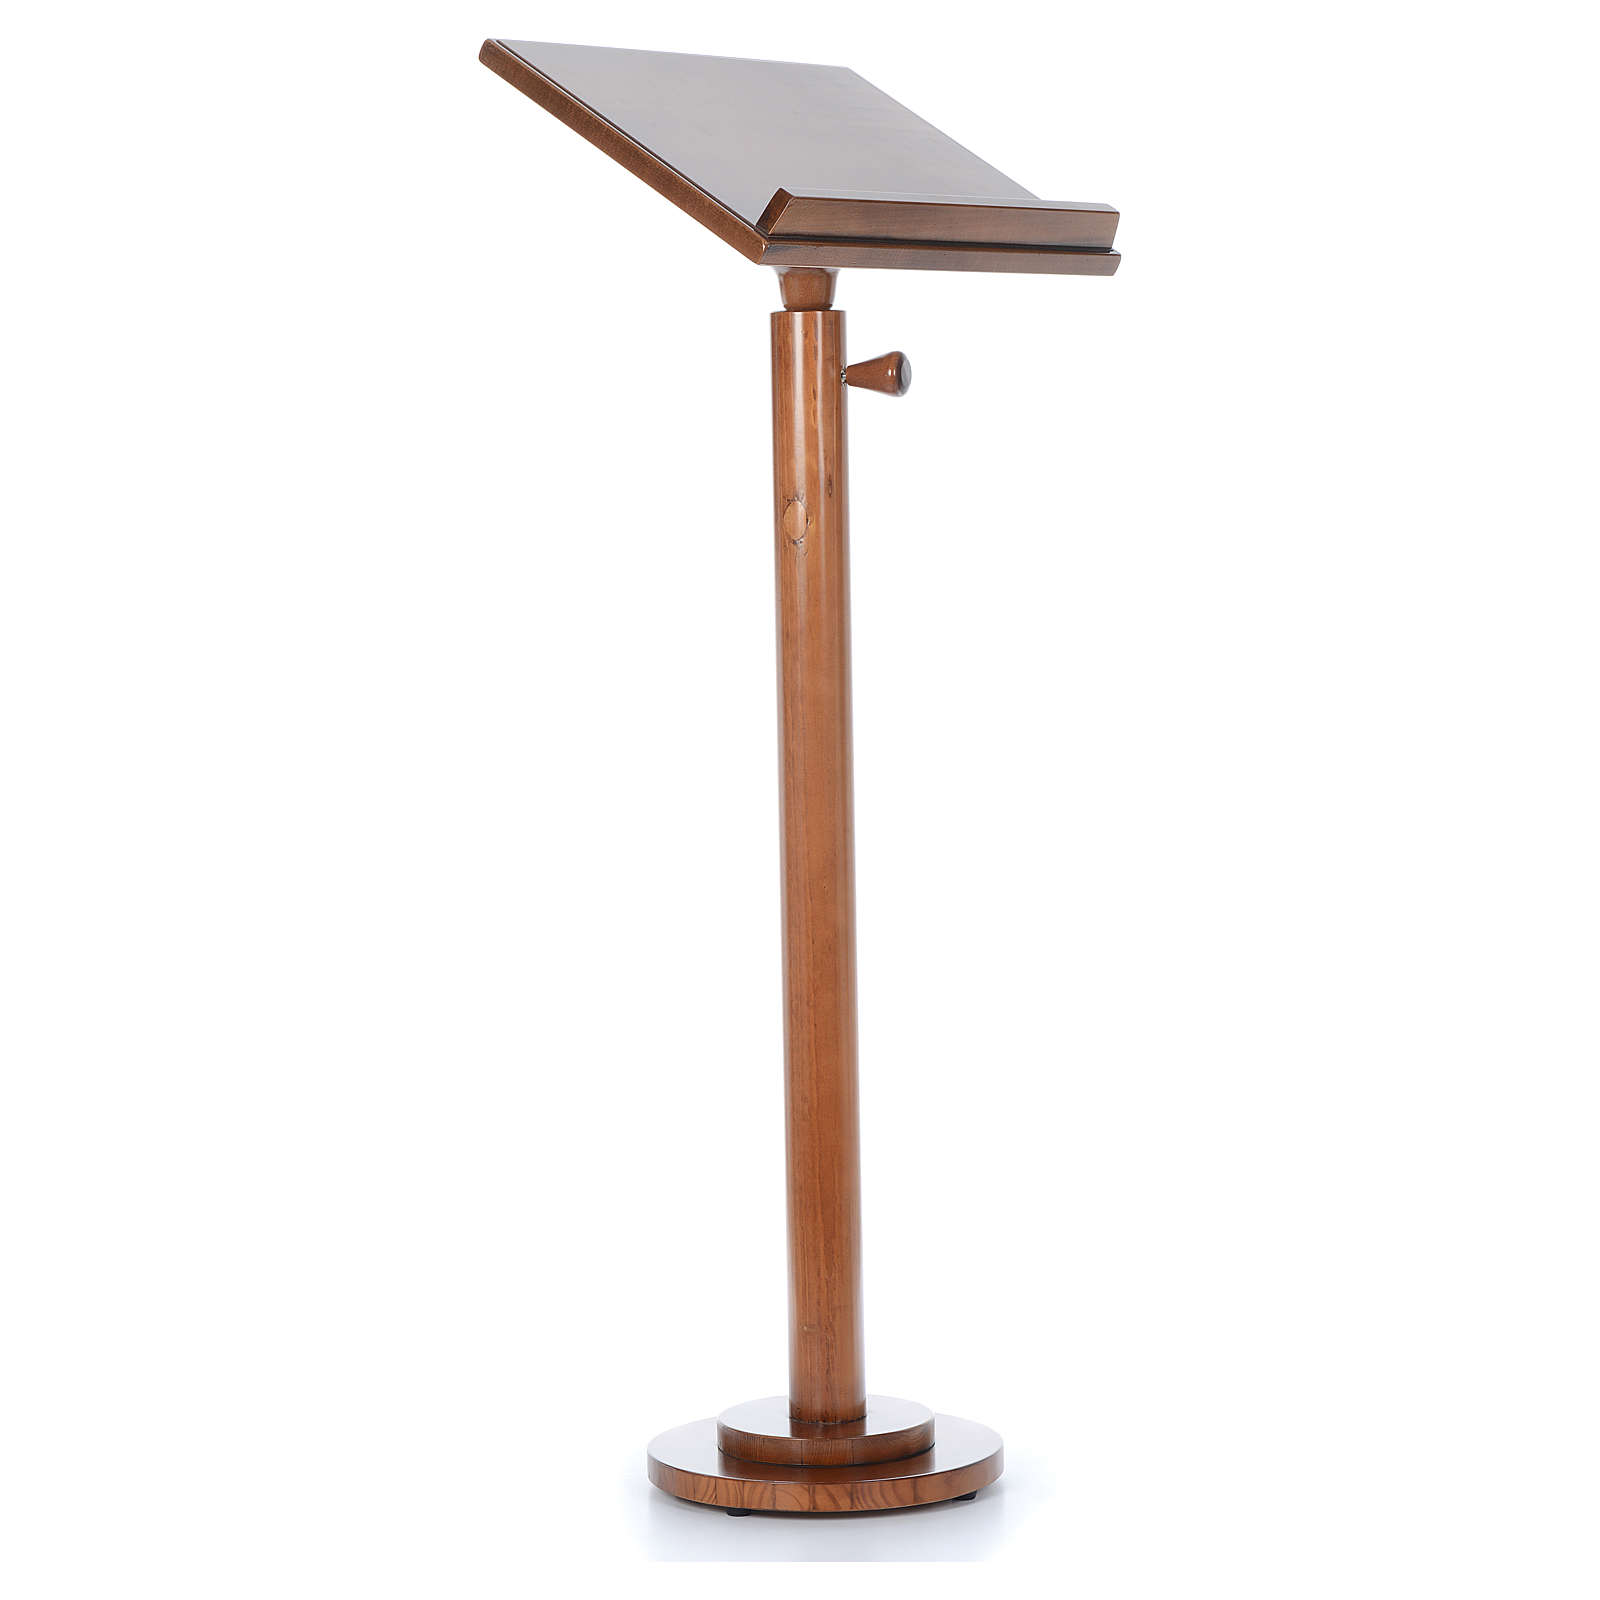 Single-column book stand with round base in light brown wood 4